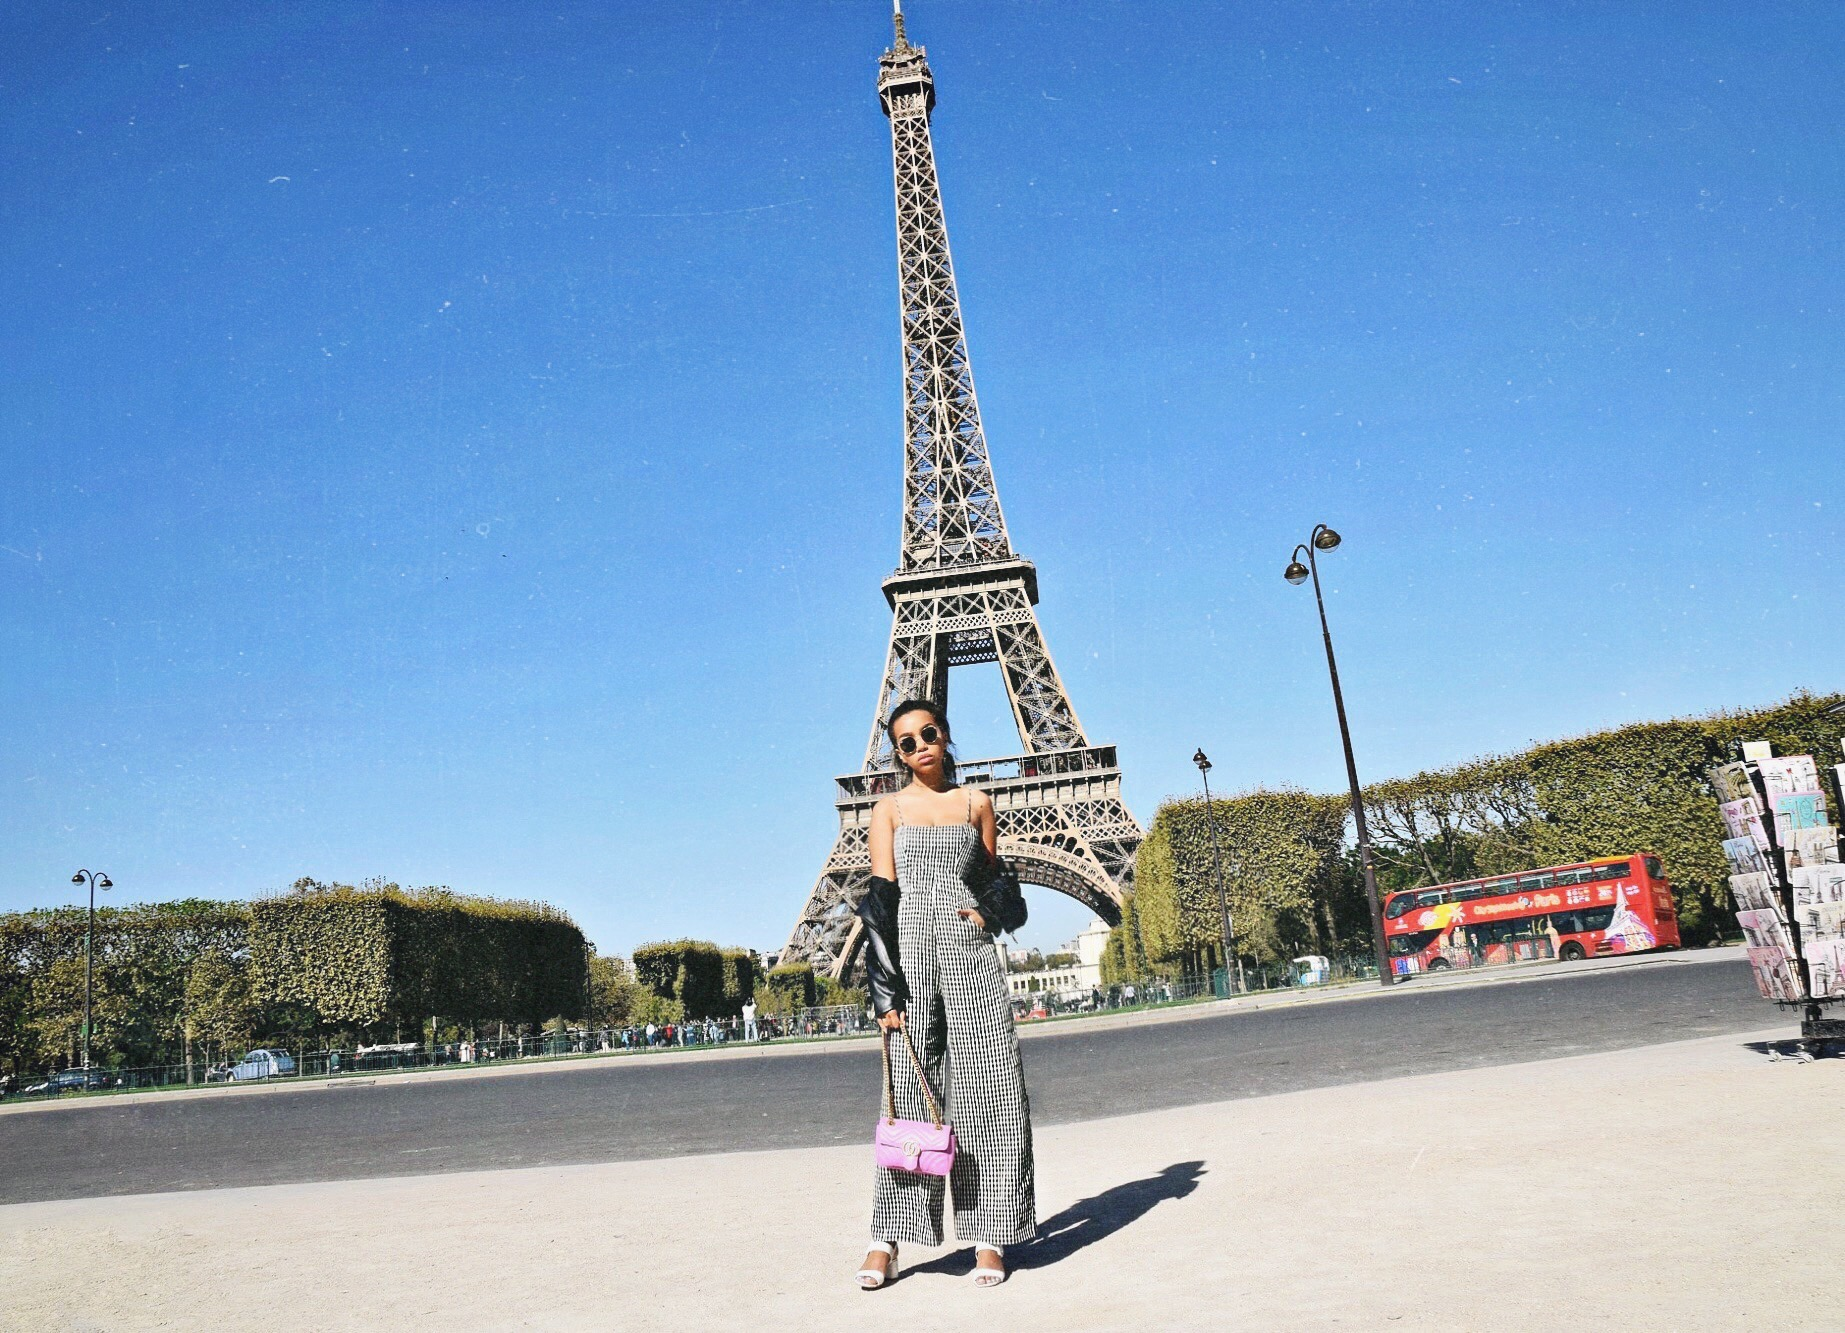 Le Tour Eiffel // The Eiffel Tower, Paris France // Reformation Gingham Jumpsuit // Zara Leather Jacket // Gucci Pink GG Marmont Bag // Round Ray Ban Sunglasses // White Prada Sandals // Paris Travel Diary // Los Angeles Fashion Blogger Daphne Blunt: To Style, With Love